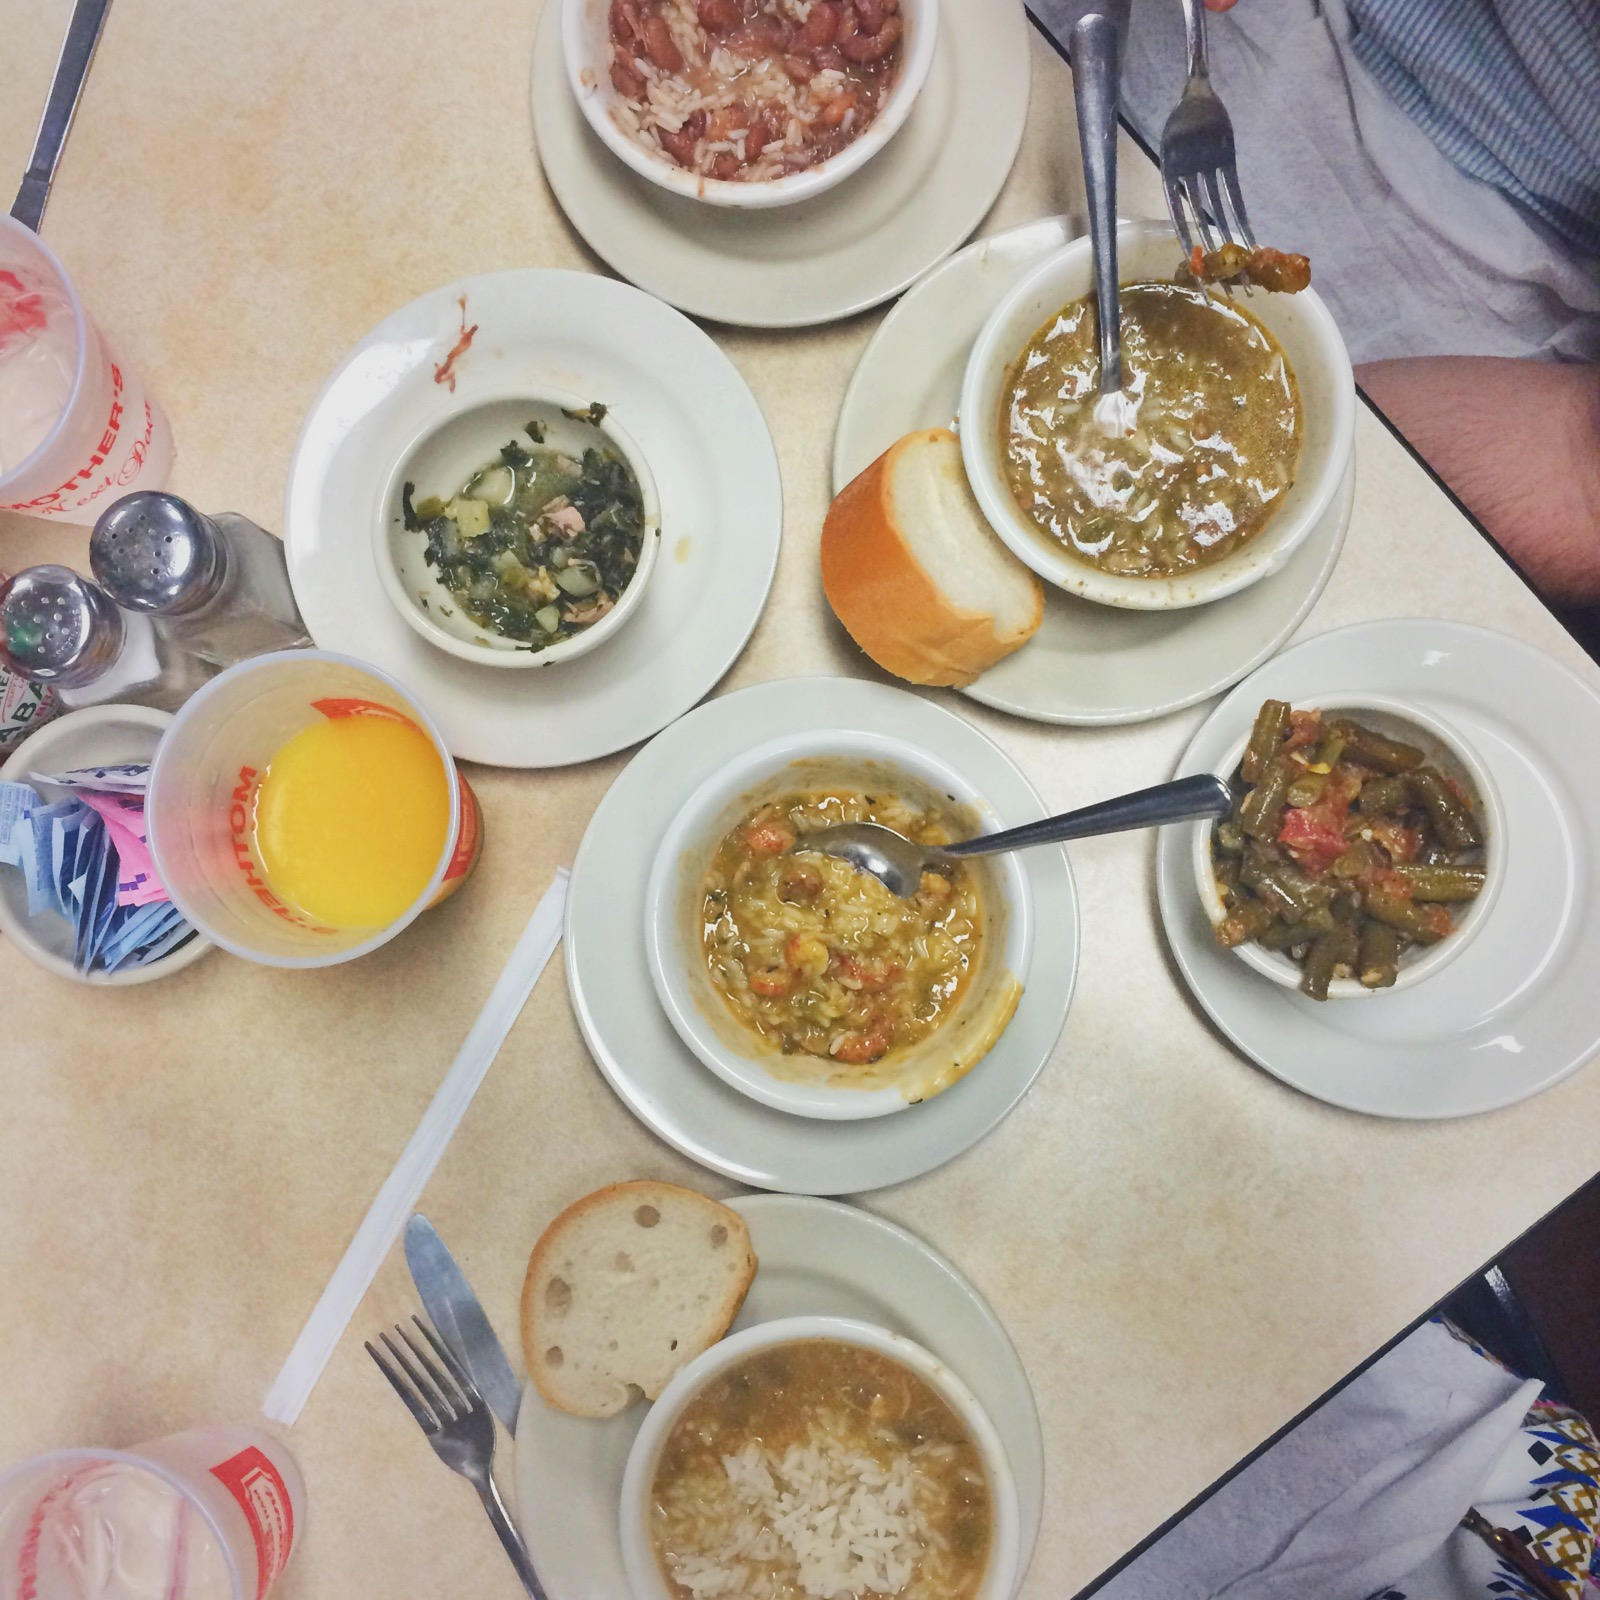 Dining at Mother's. Joe wanted to try them all - Crawfish Etouffee, Chicken & Sausage gumbo, seafood gumbo, red beans and rice and collard greens.